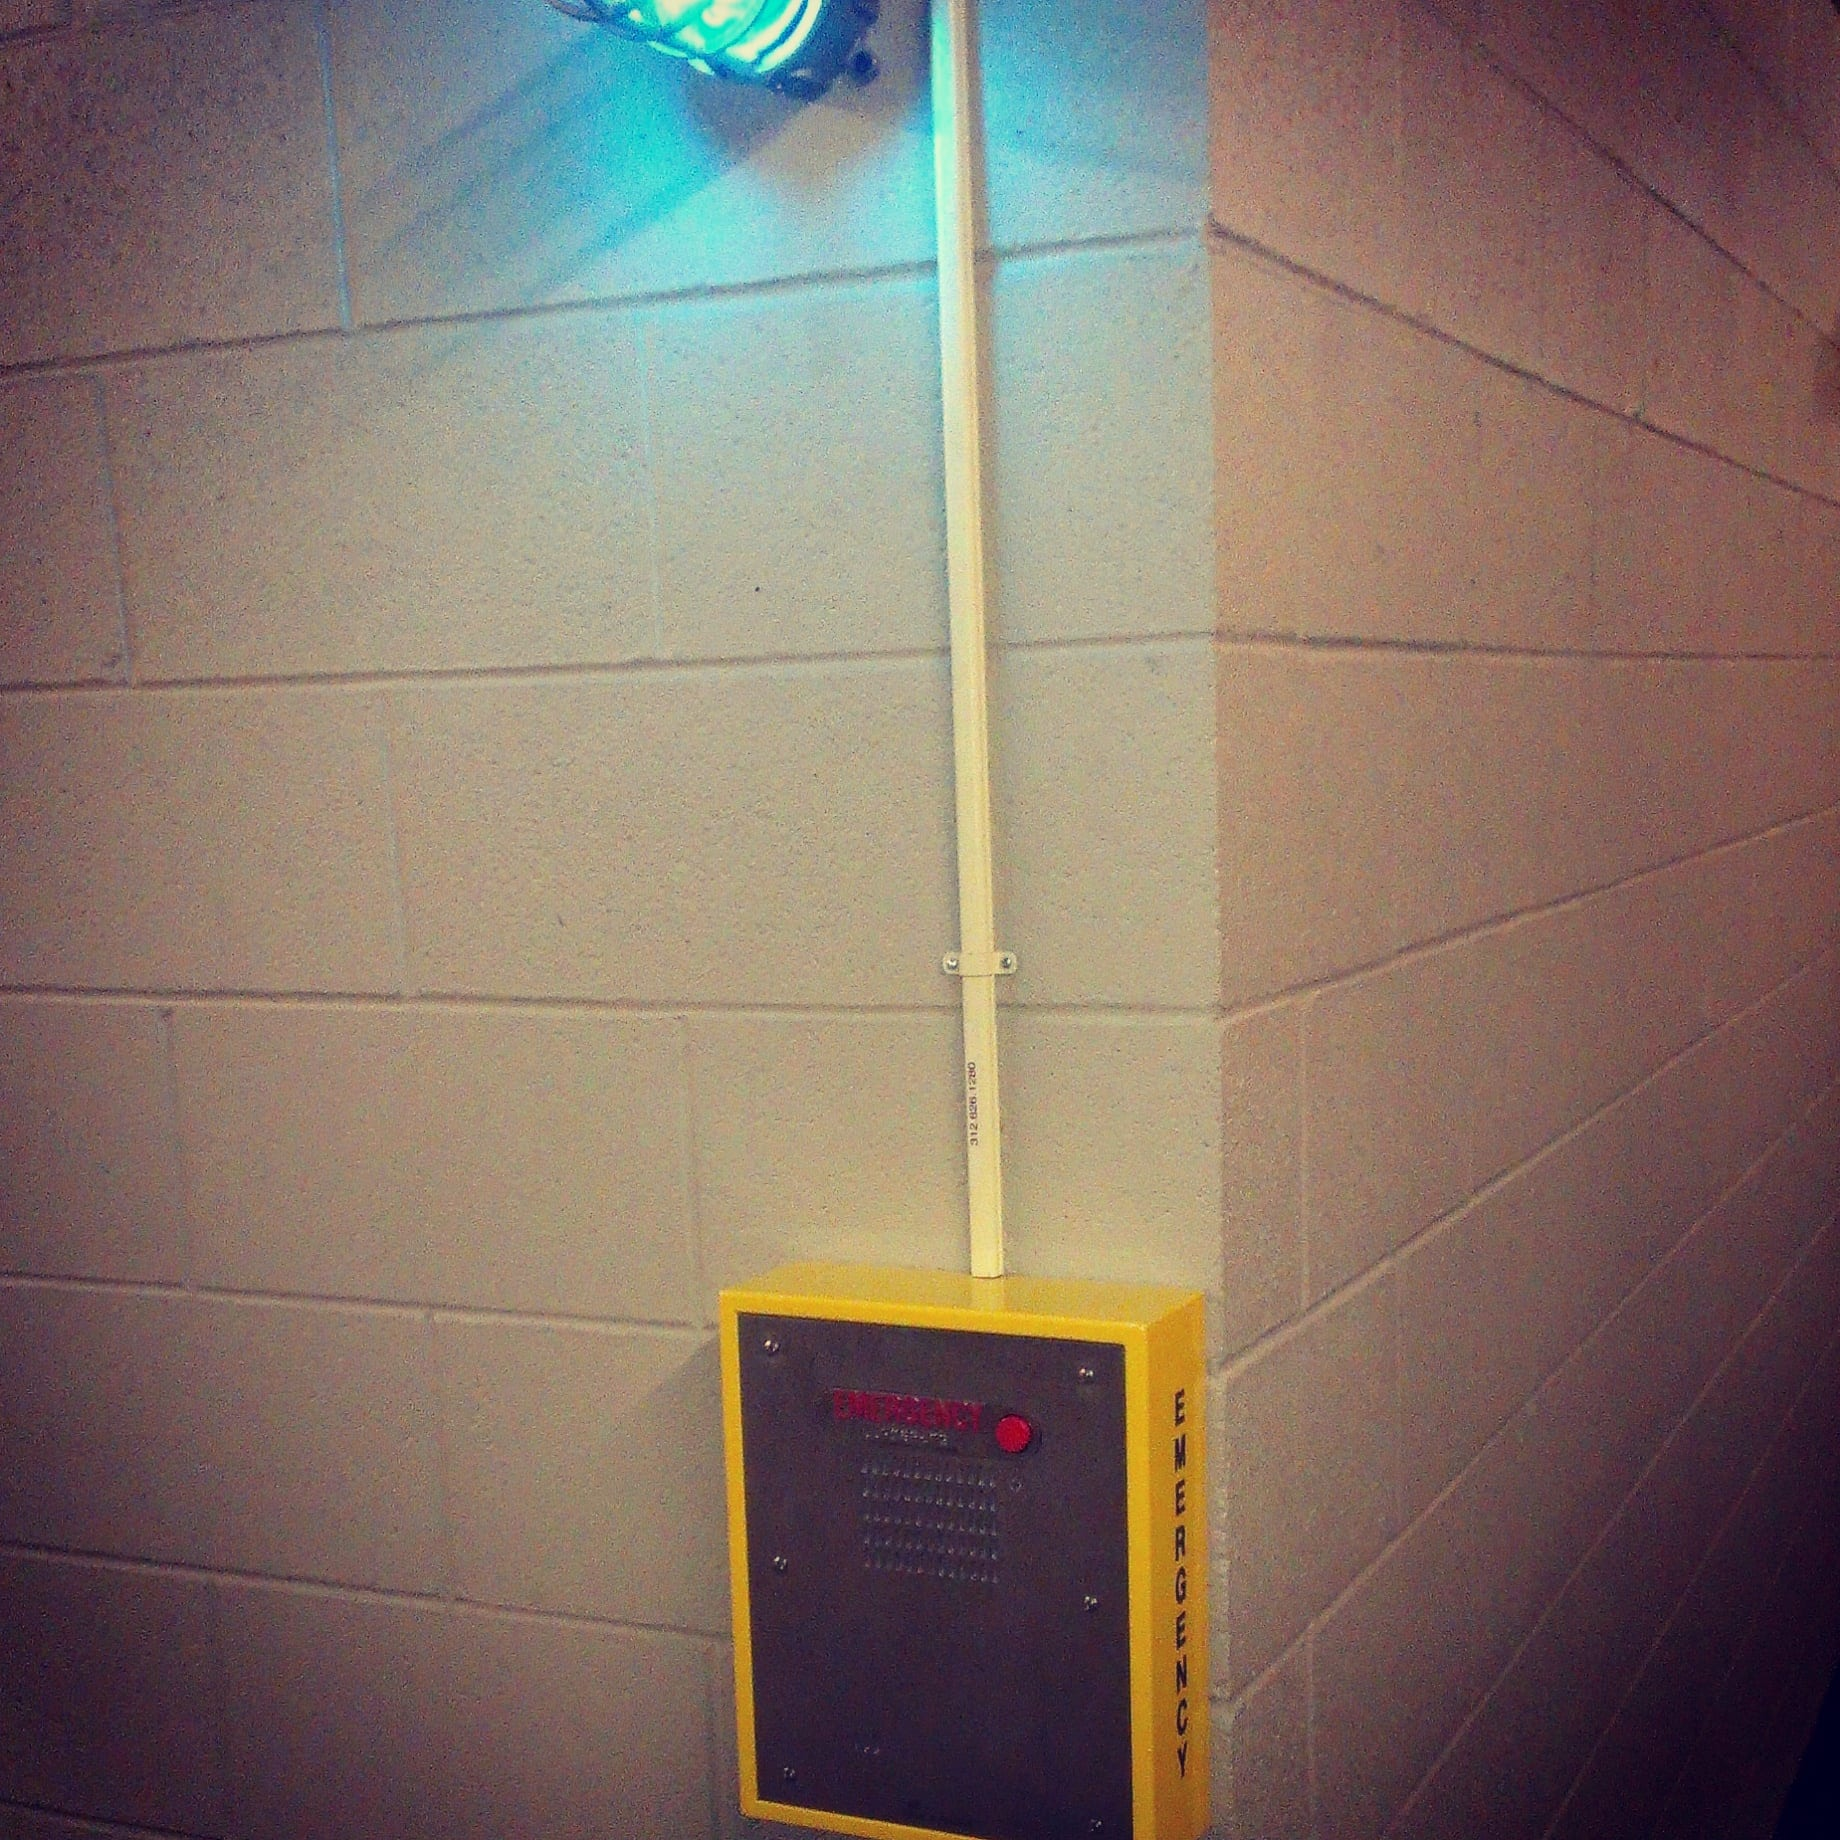 emergency call box in hallway